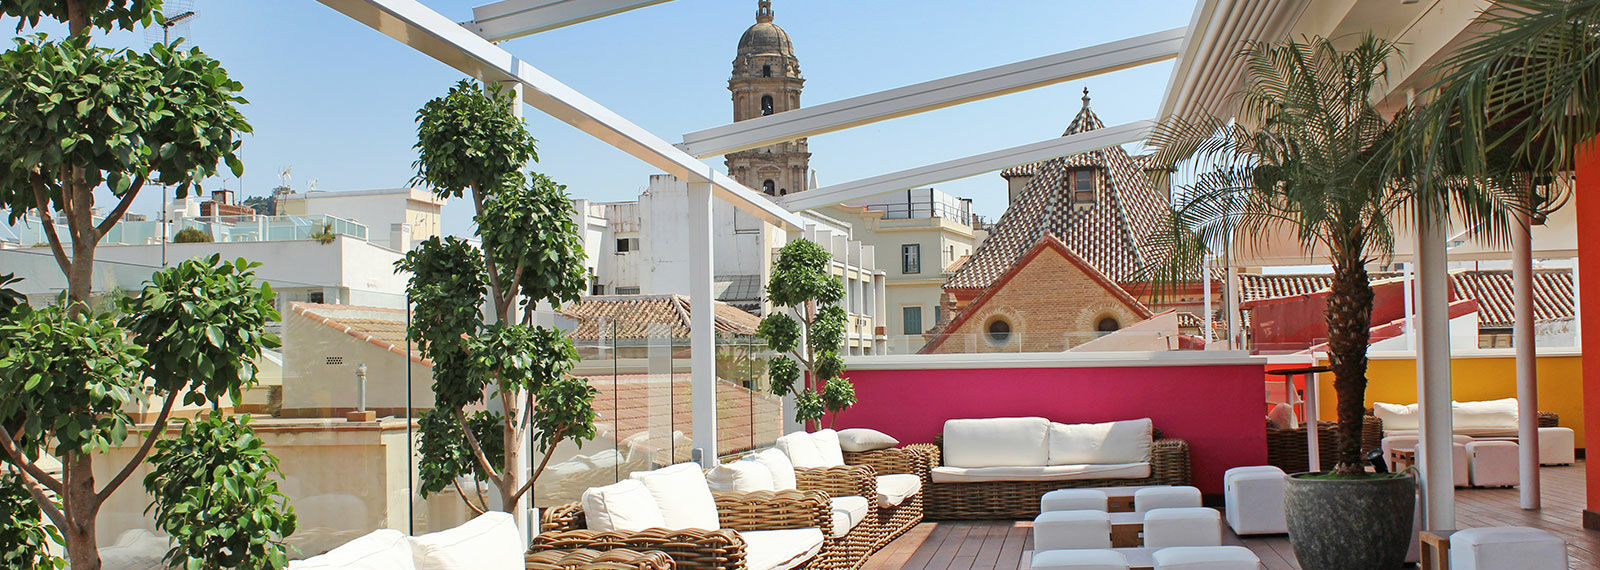 Malaga Premium Hotel Terrace A Boutique Hotel With Great Views